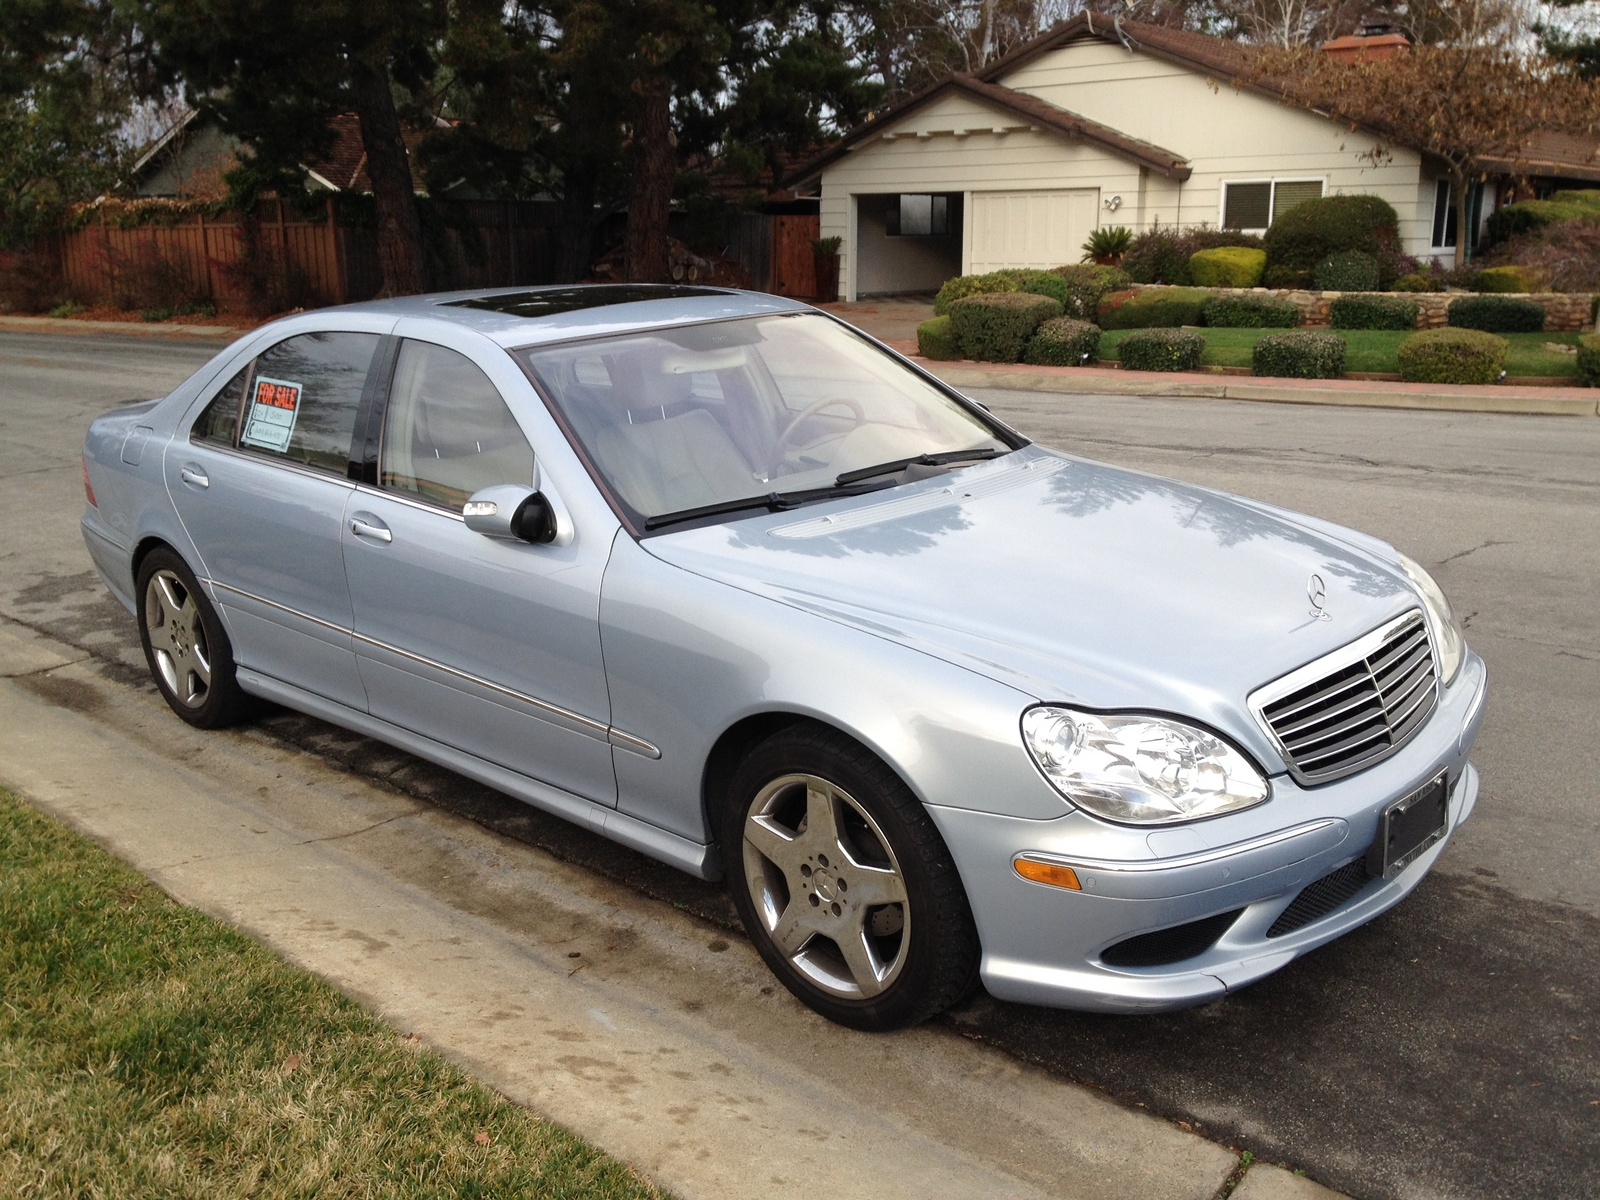 2004 mercedes benz s class pictures cargurus for 2004 mercedes benz